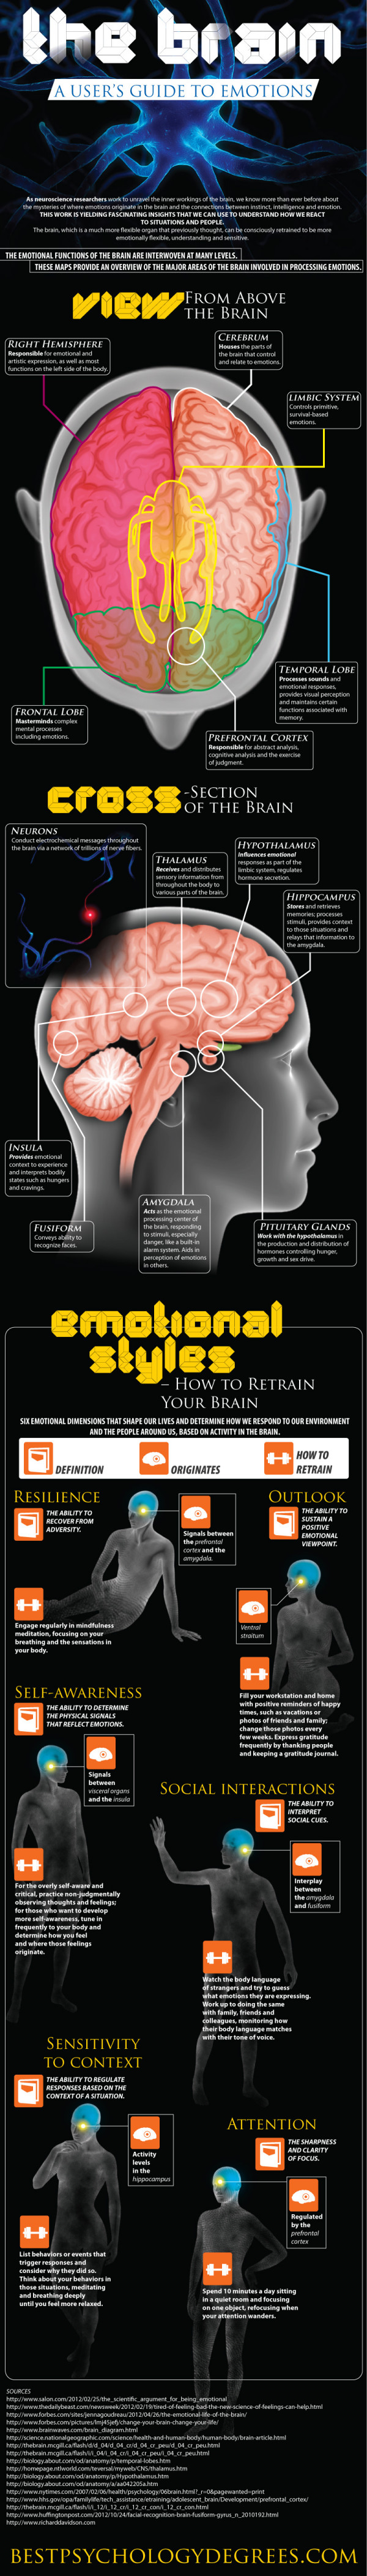 Brain Emotional Processing-Infographic